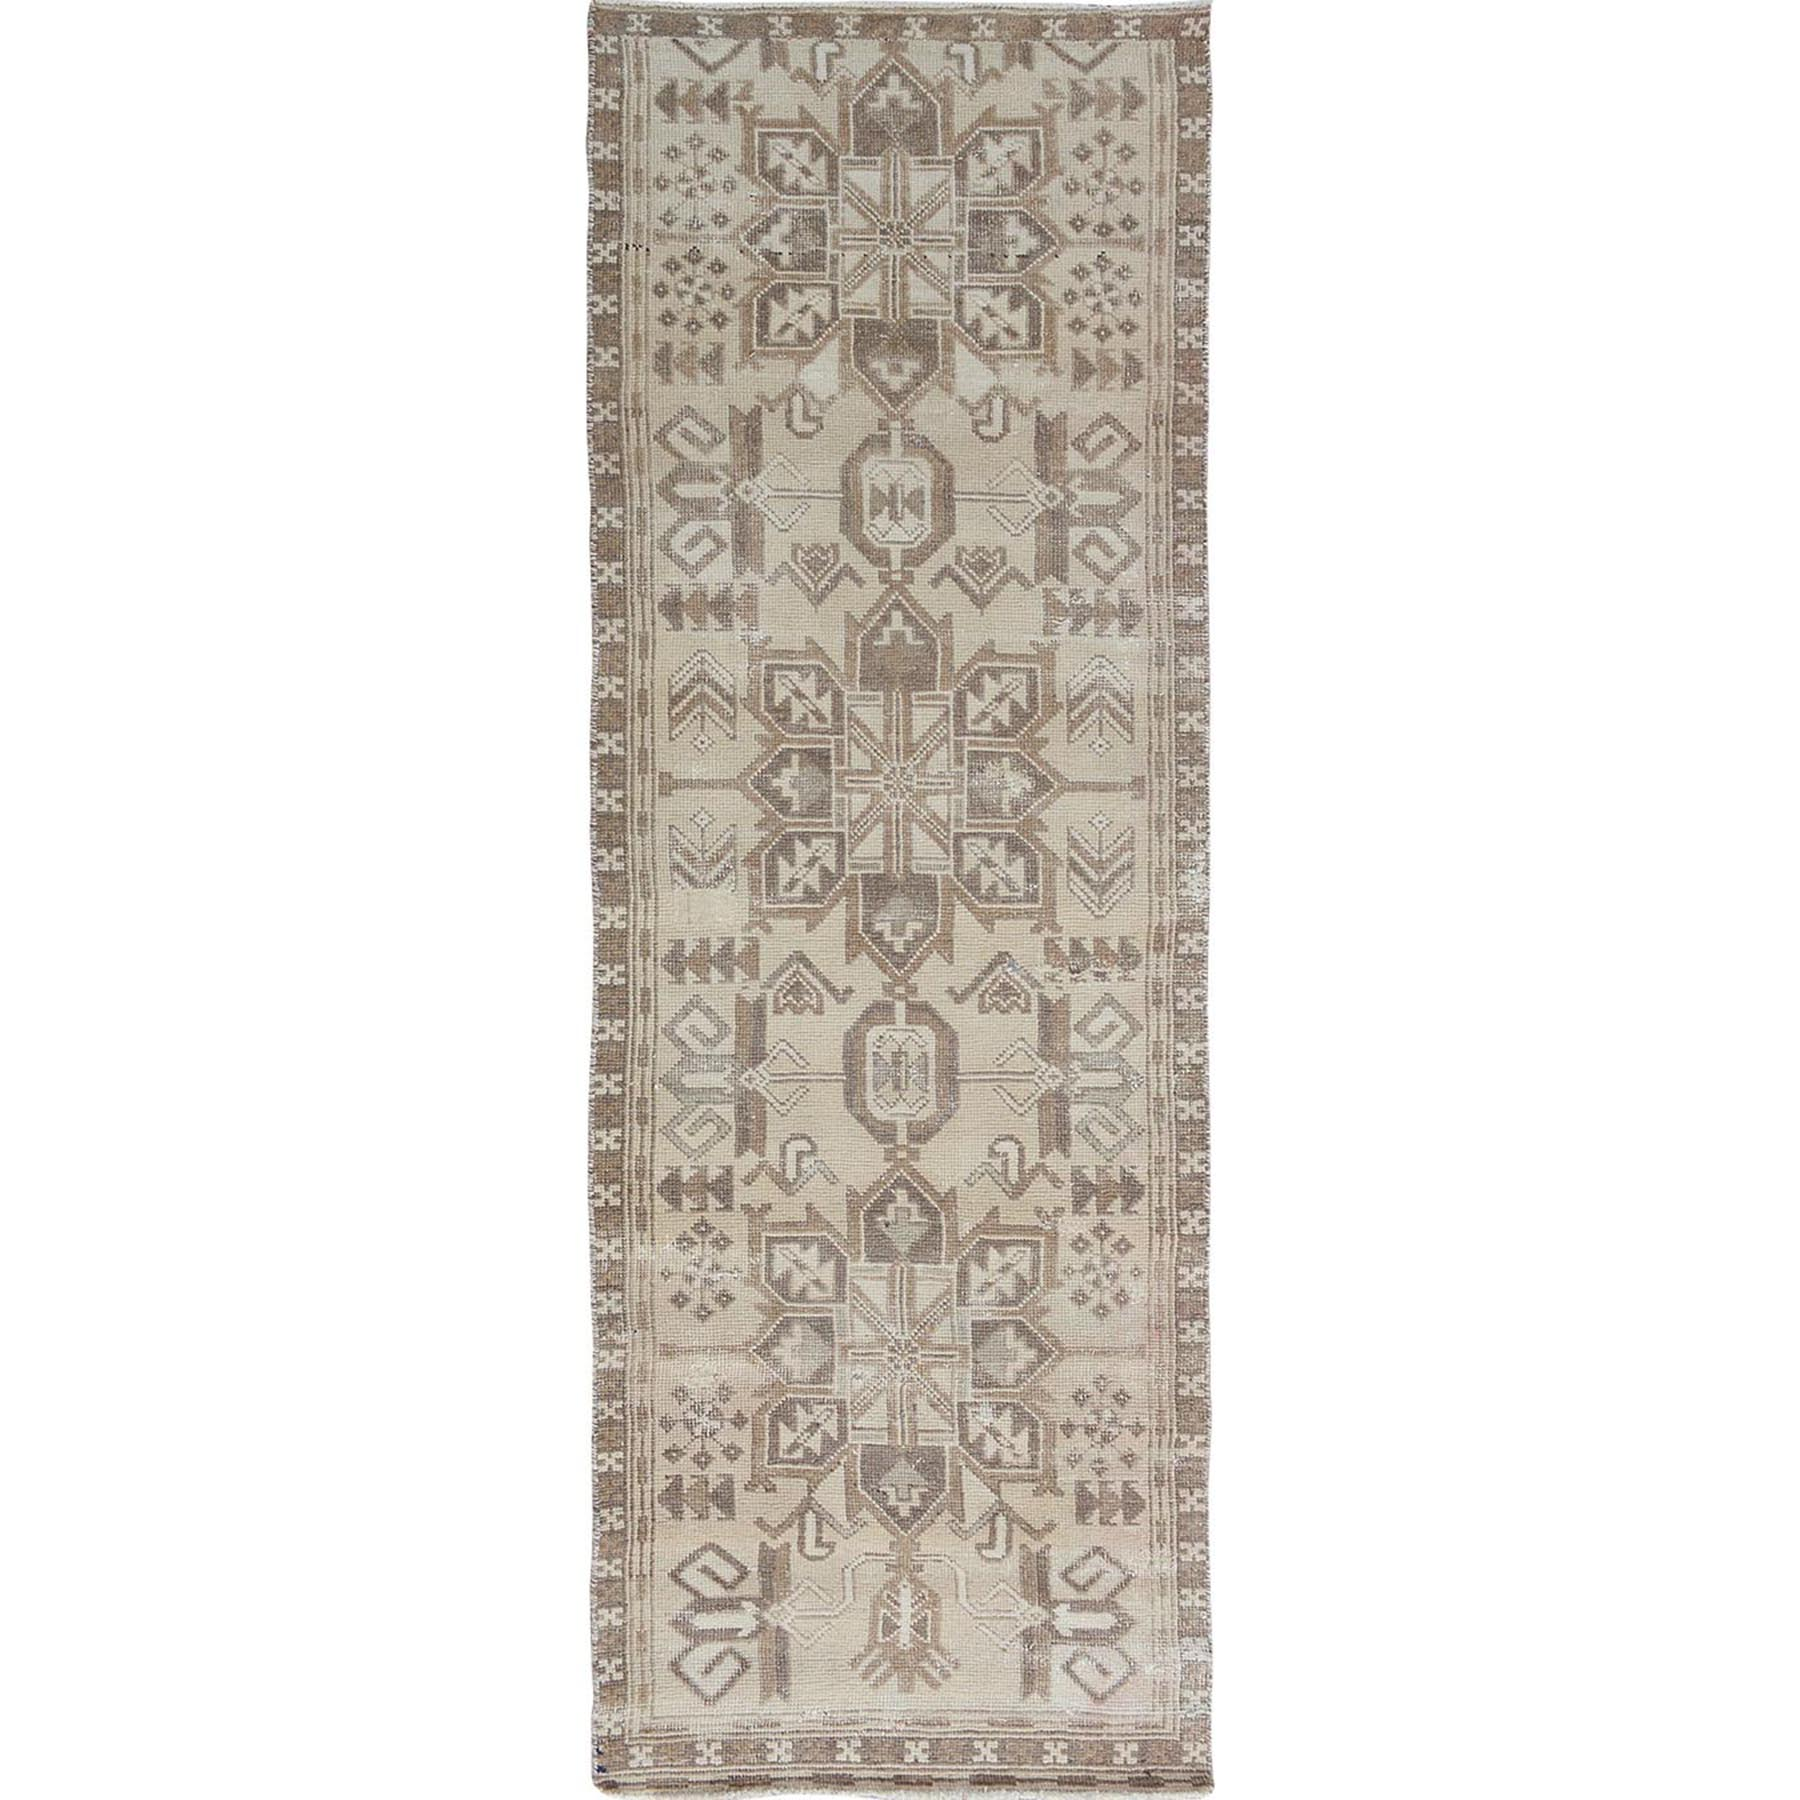 "3'X9'1"" Natural Colors Old And Worn Down Persian Heriz Hand Knotted Runner Oriental Rug moae7ae0"